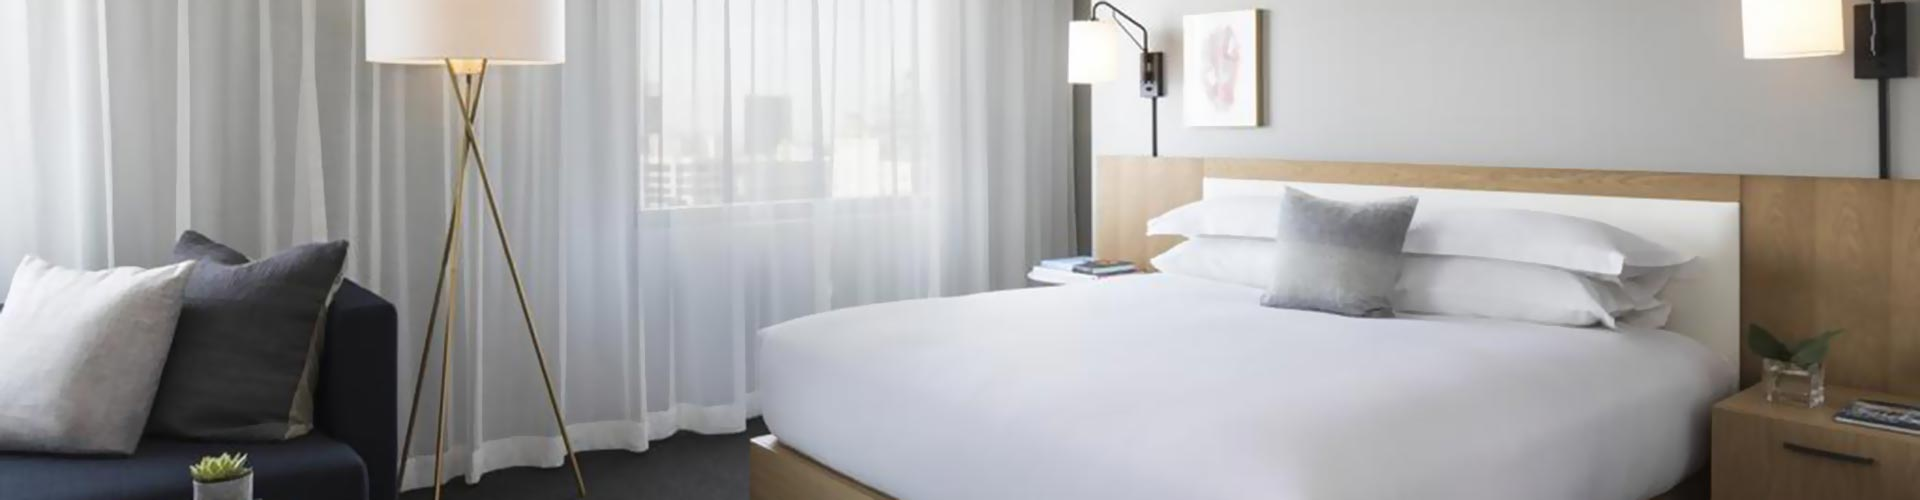 Kimpton Everly Header 1920x500